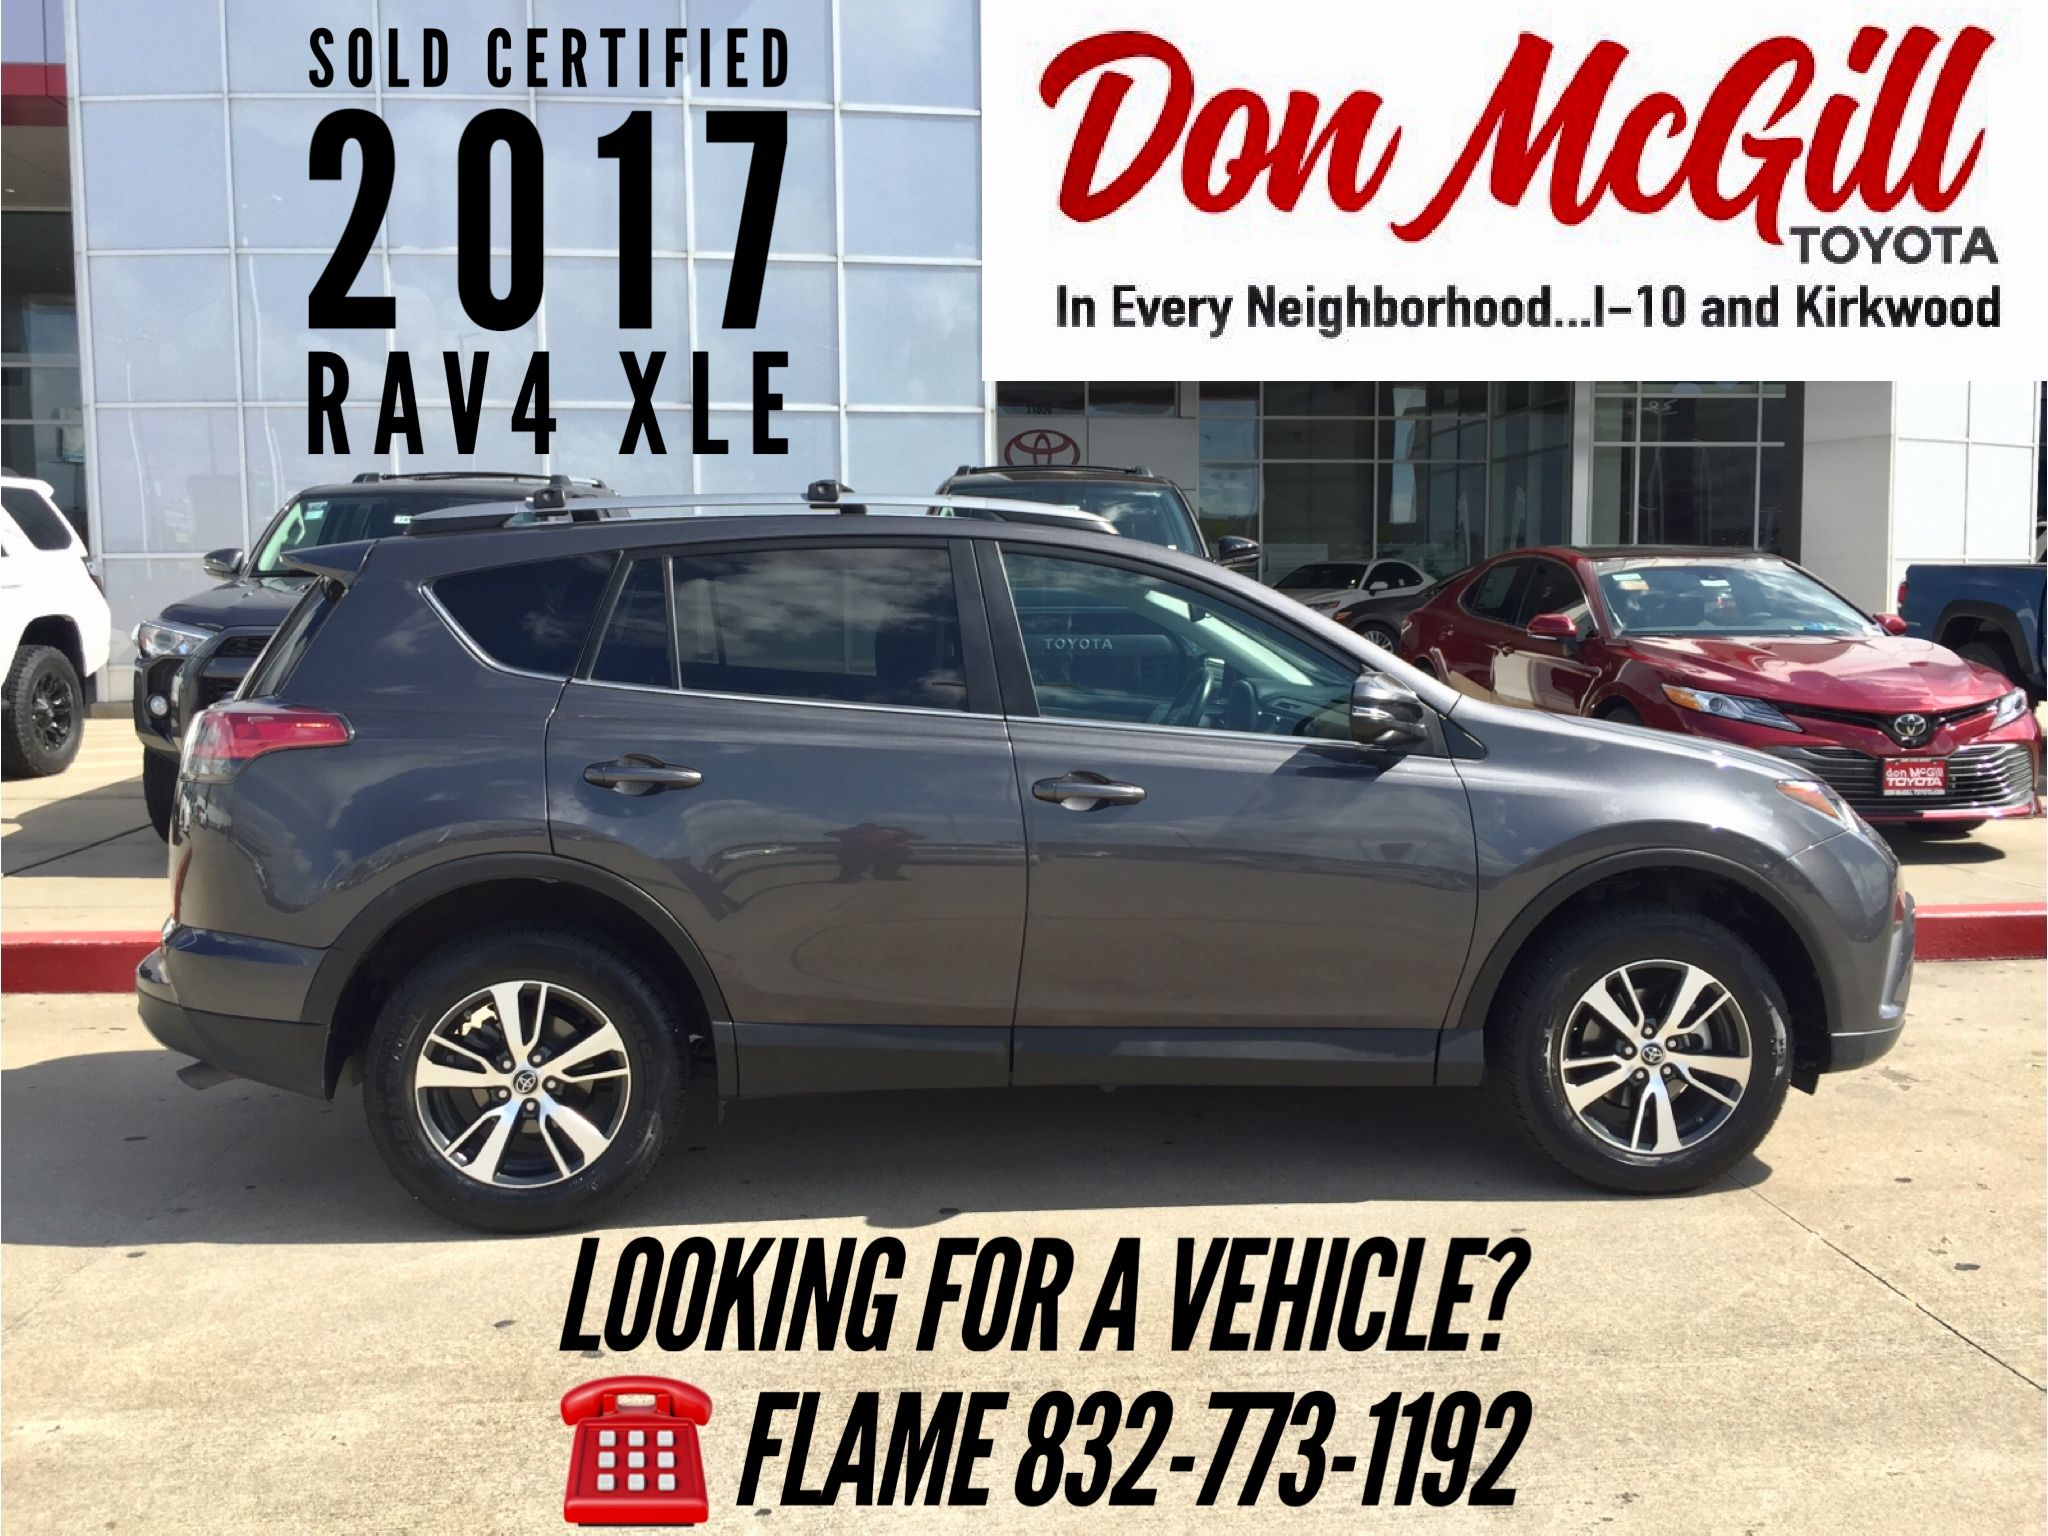 Don McGill Toyota Katy Freeway Houston TX Call Or Text